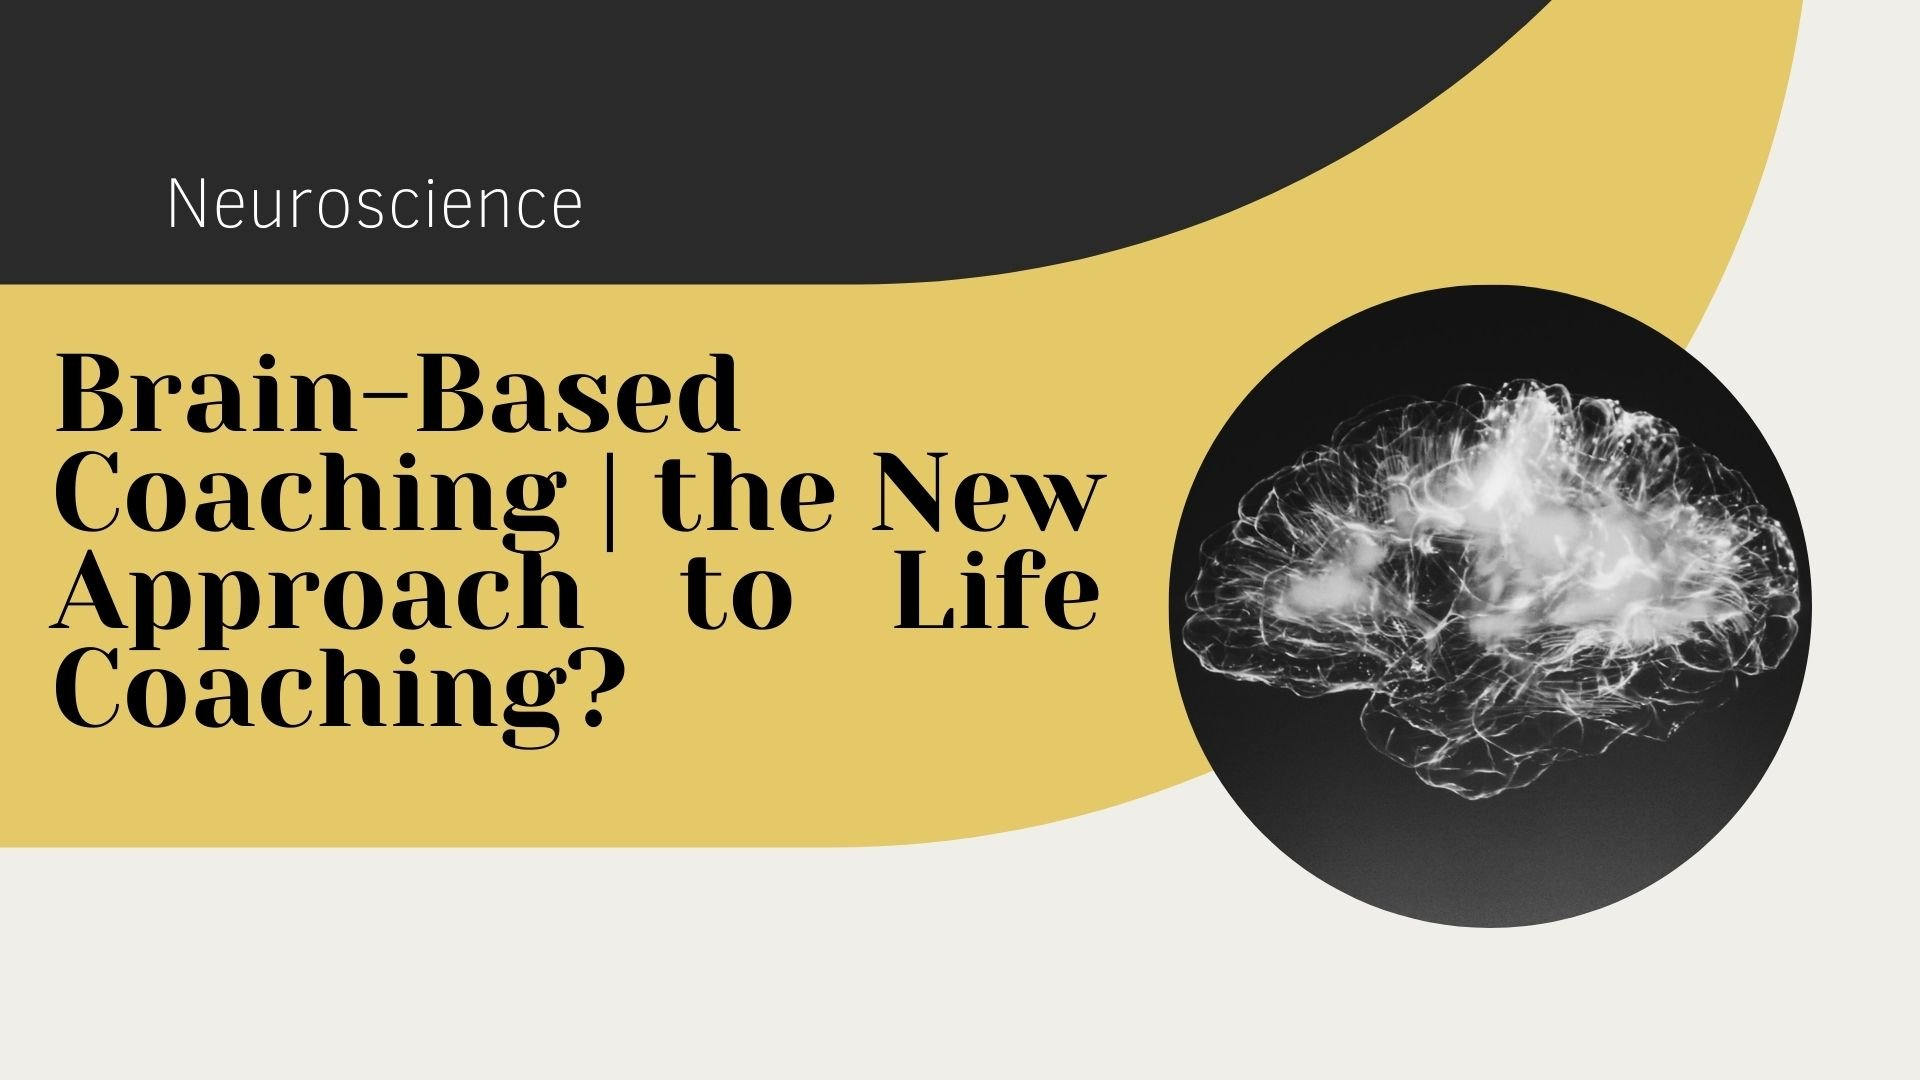 brain-based coaching - the new life coaching?